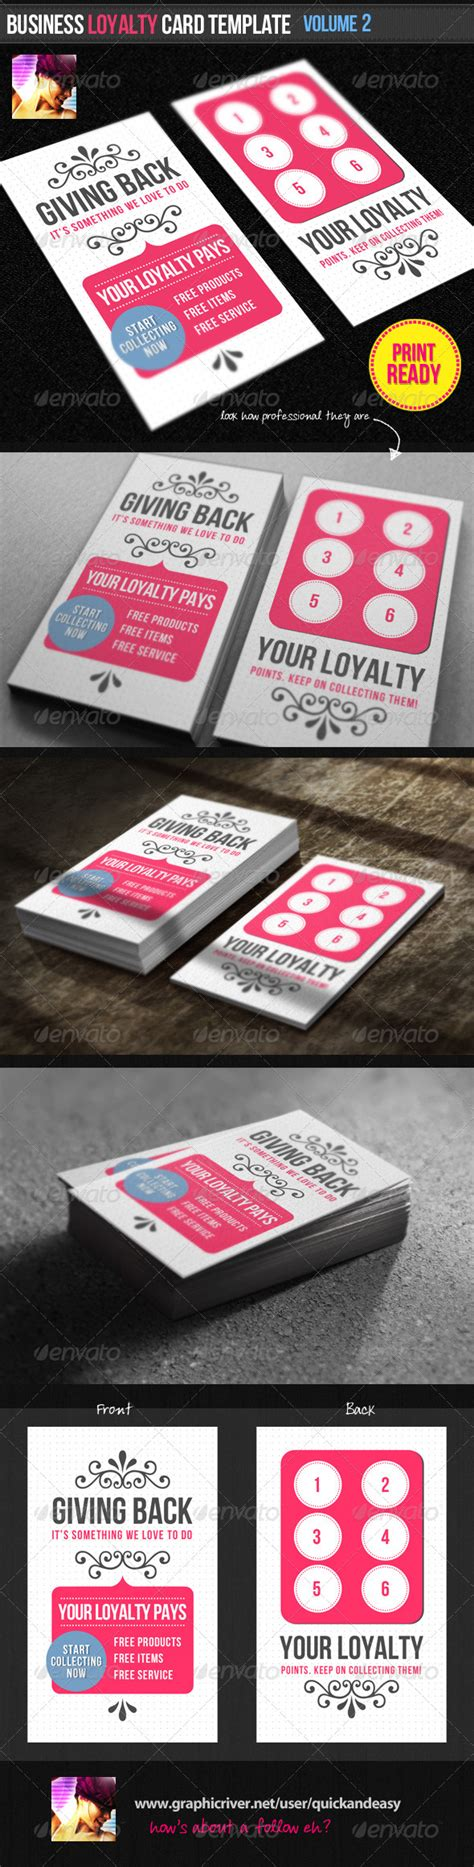 loyalty card template psd free business loyalty card template vol 2 by quickandeasy